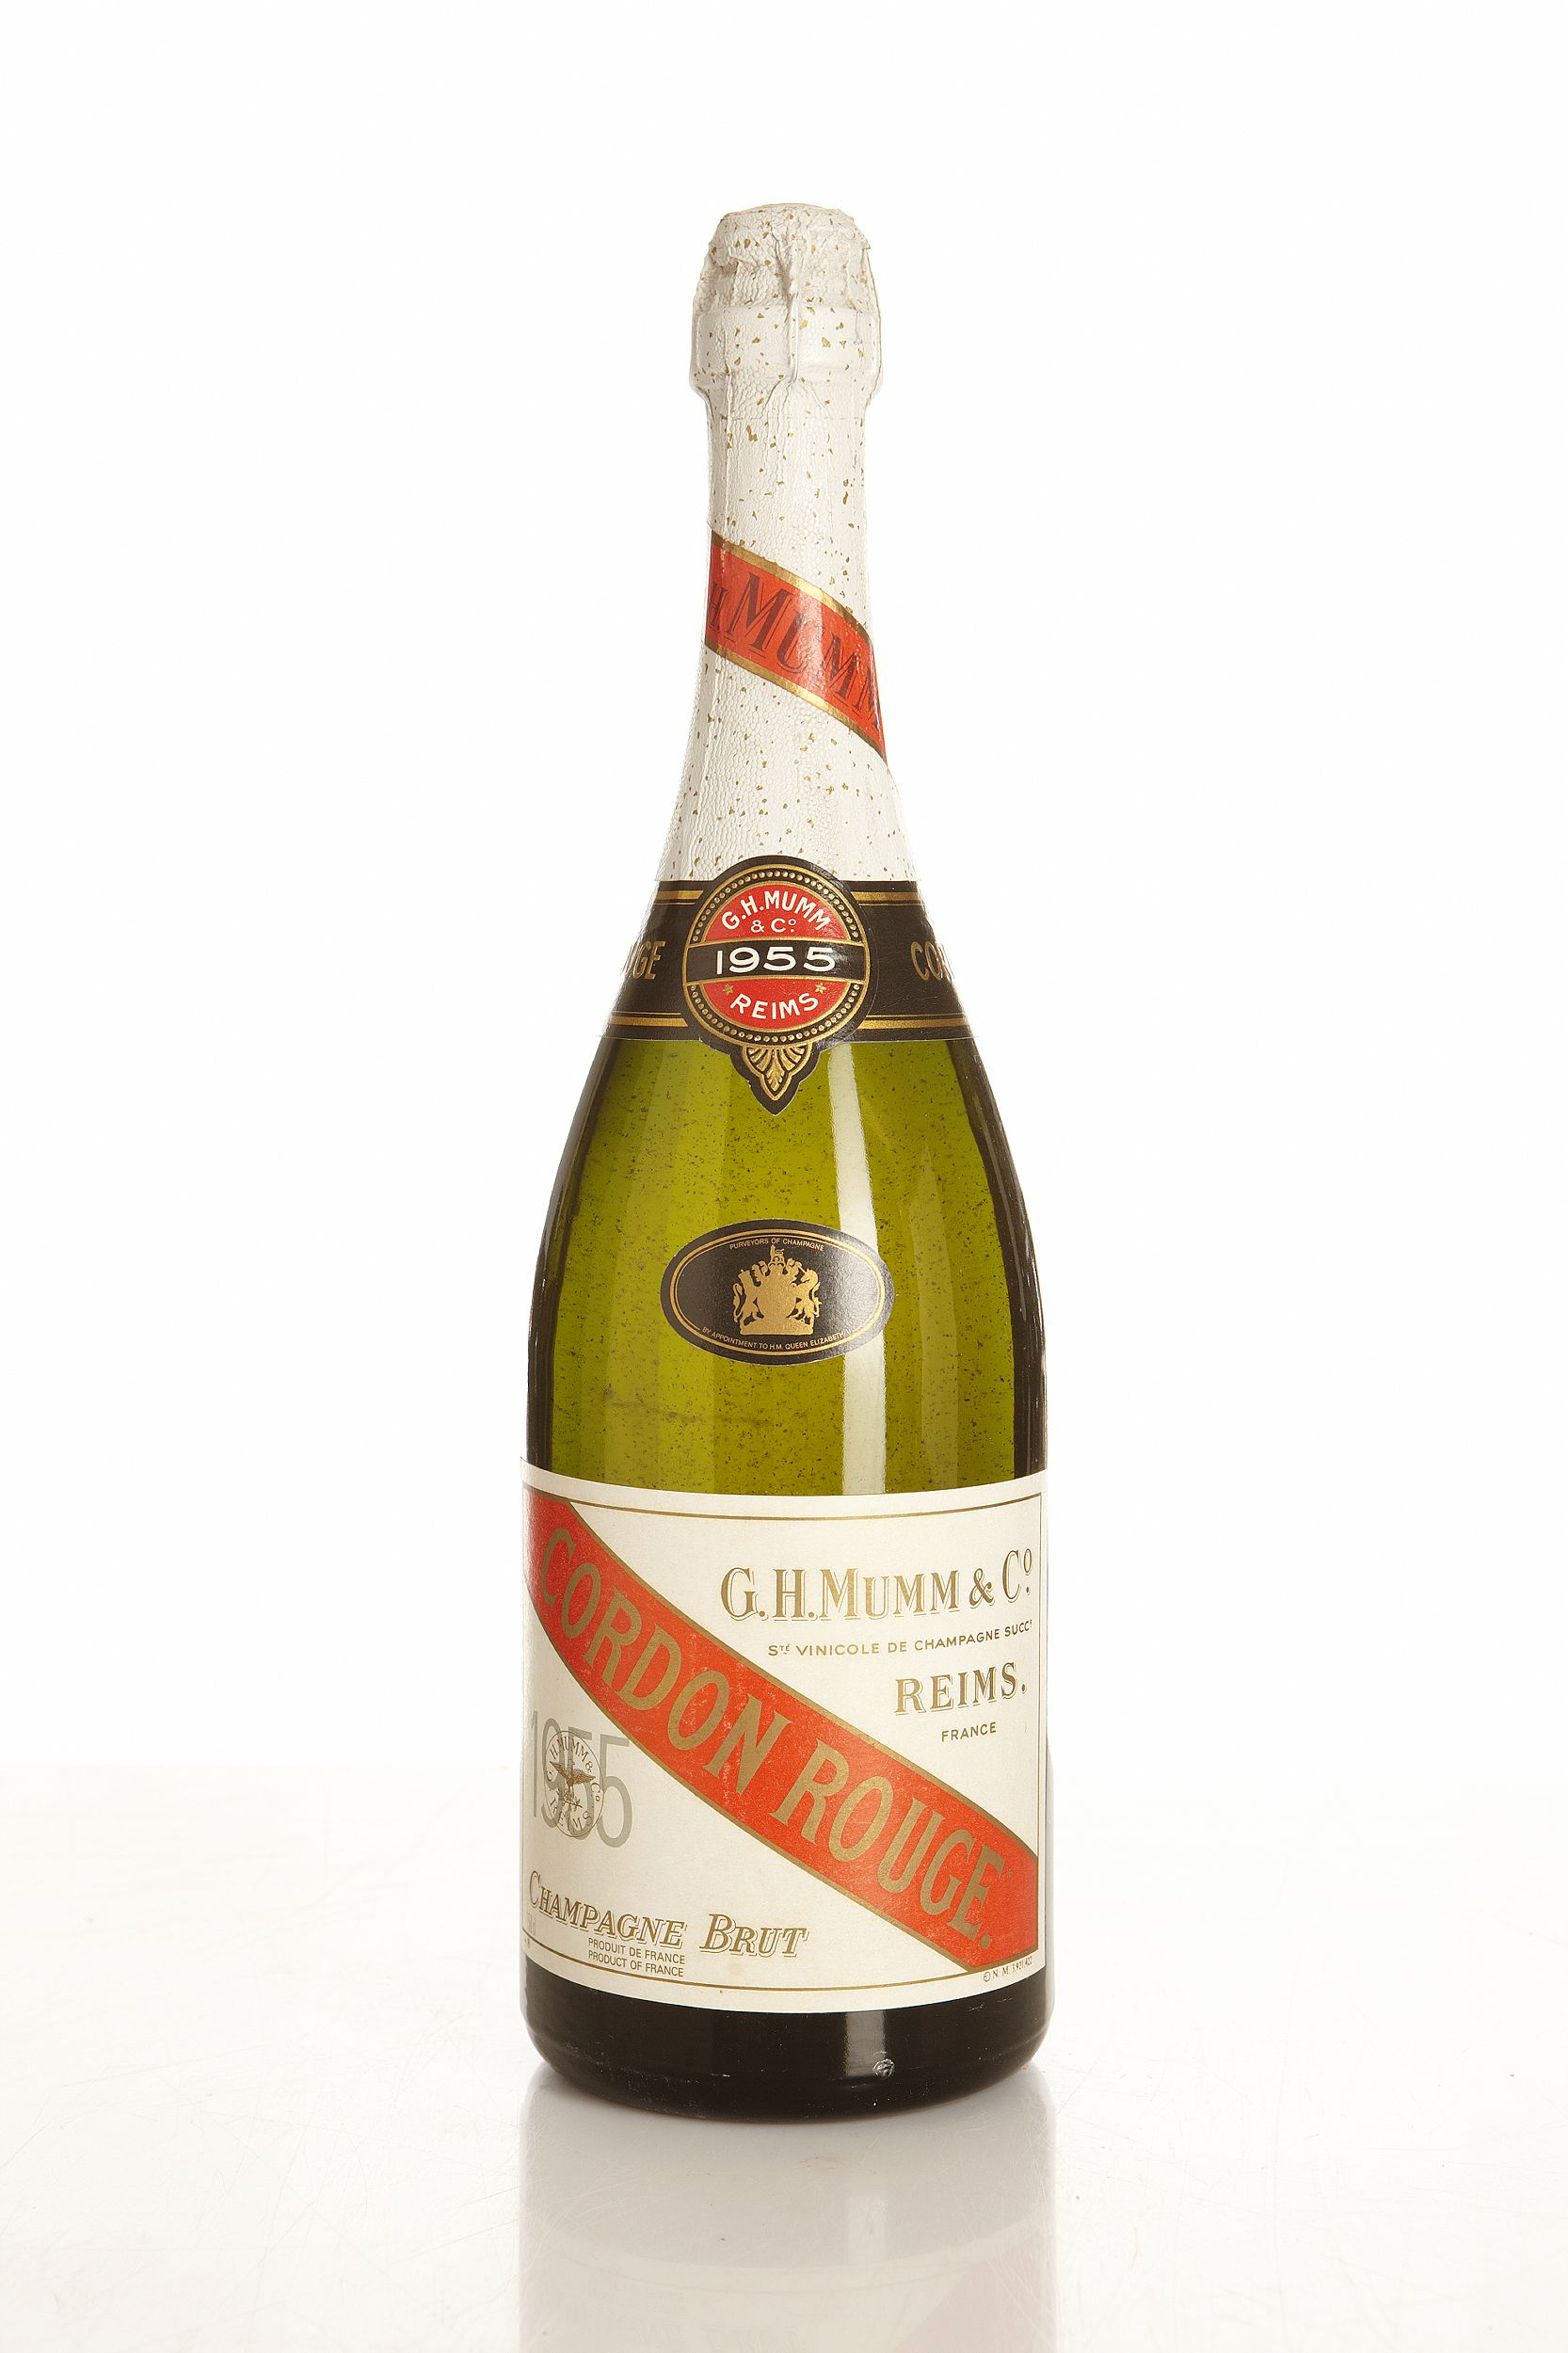 Cordon Rouge 1955, Mumm, Champagne, Stored in